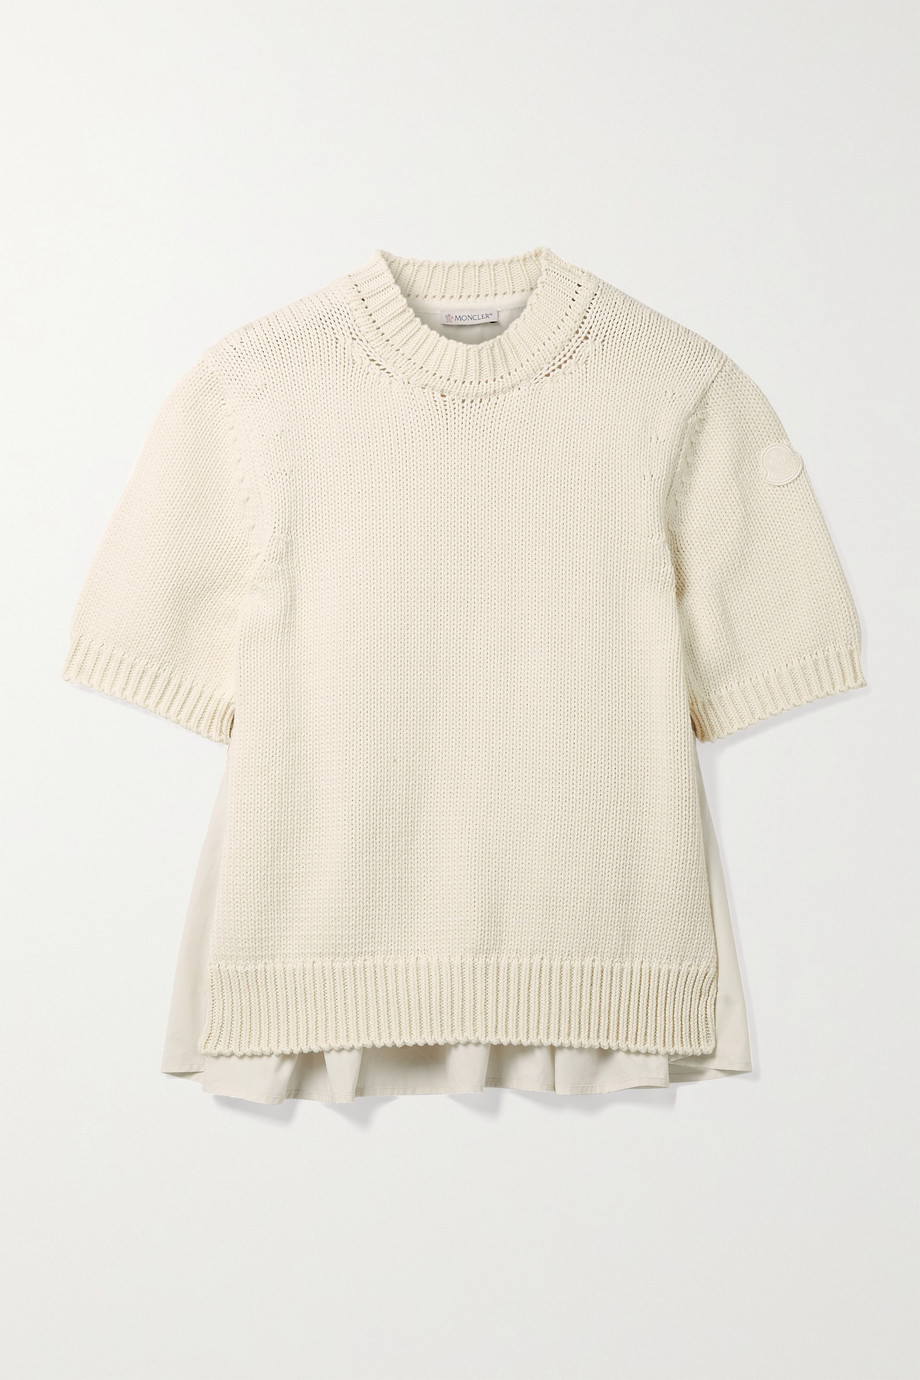 Moncler Paneled cotton and poplin sweater